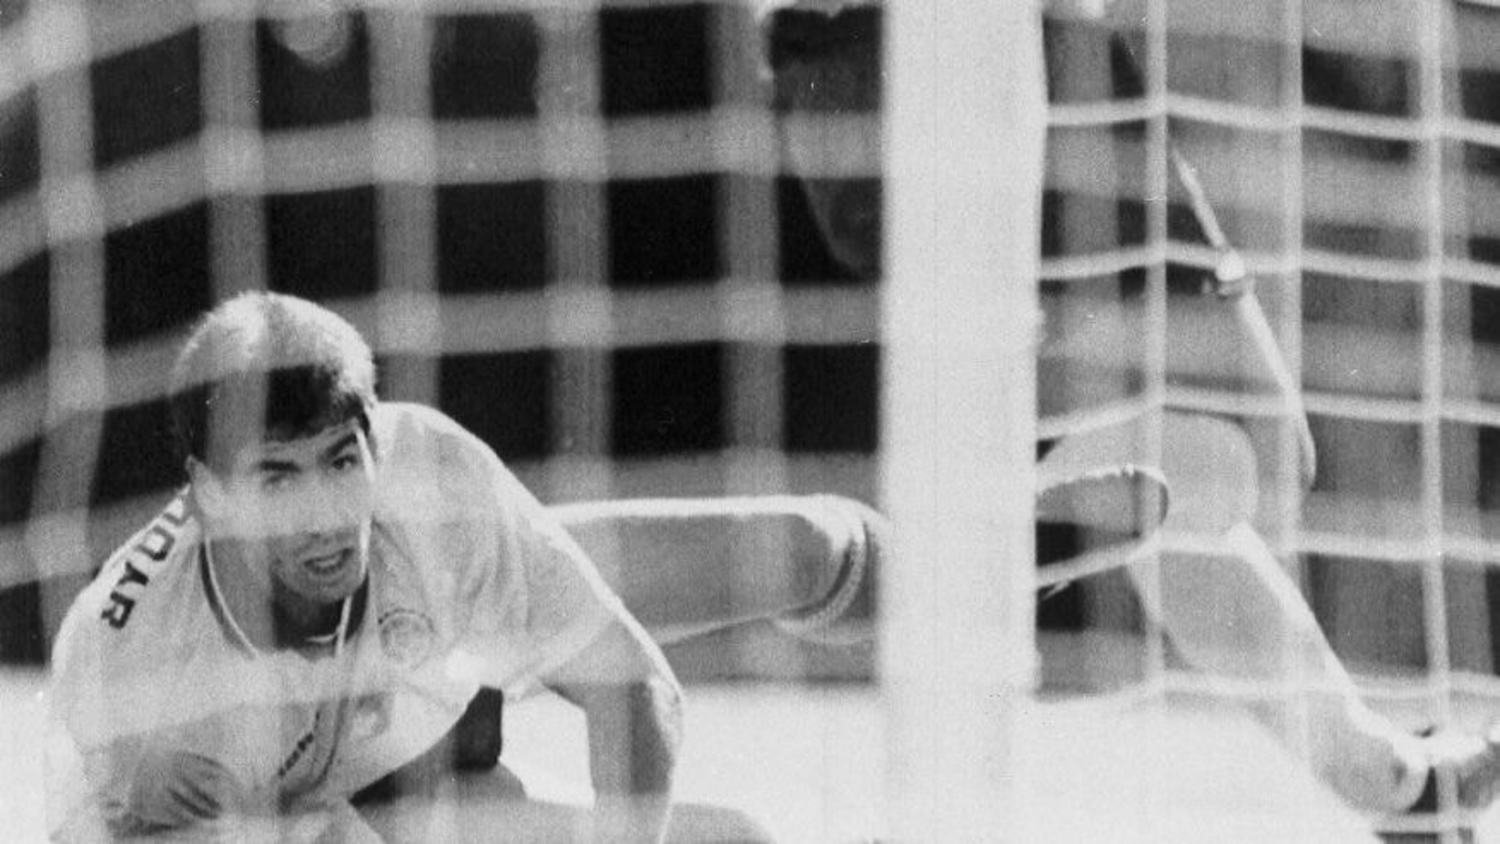 The Goal That Ended a Footballer's Life